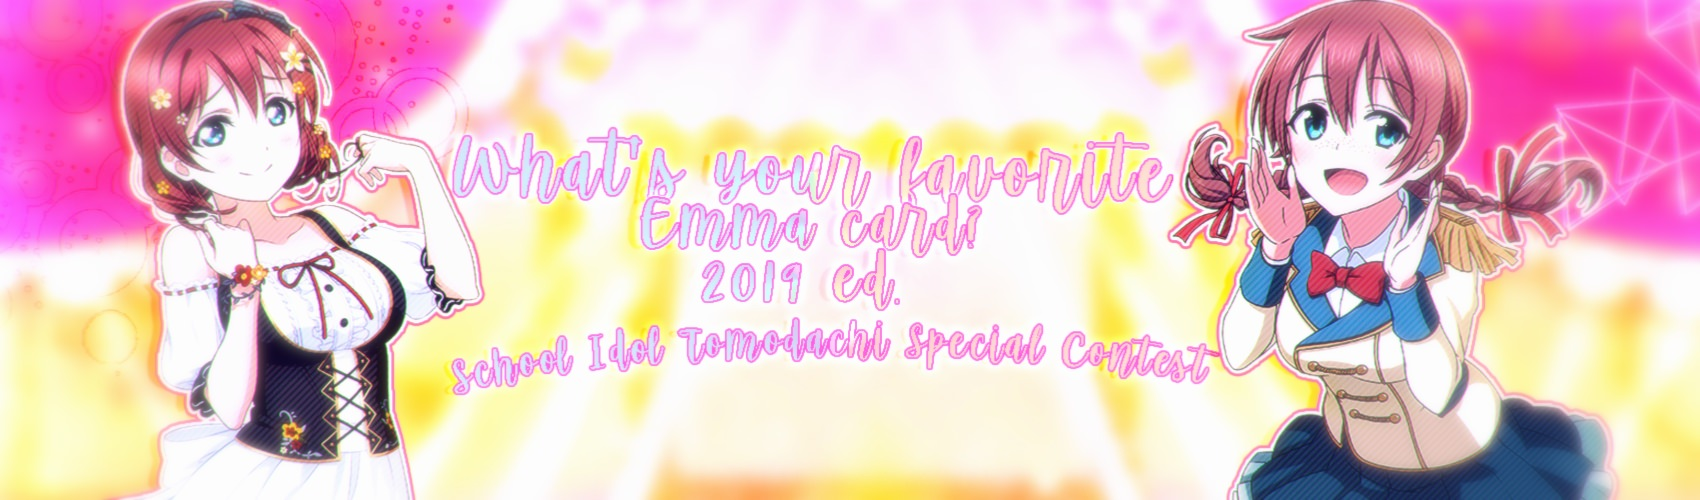 What's your favorite Emma card? 2019 ed.